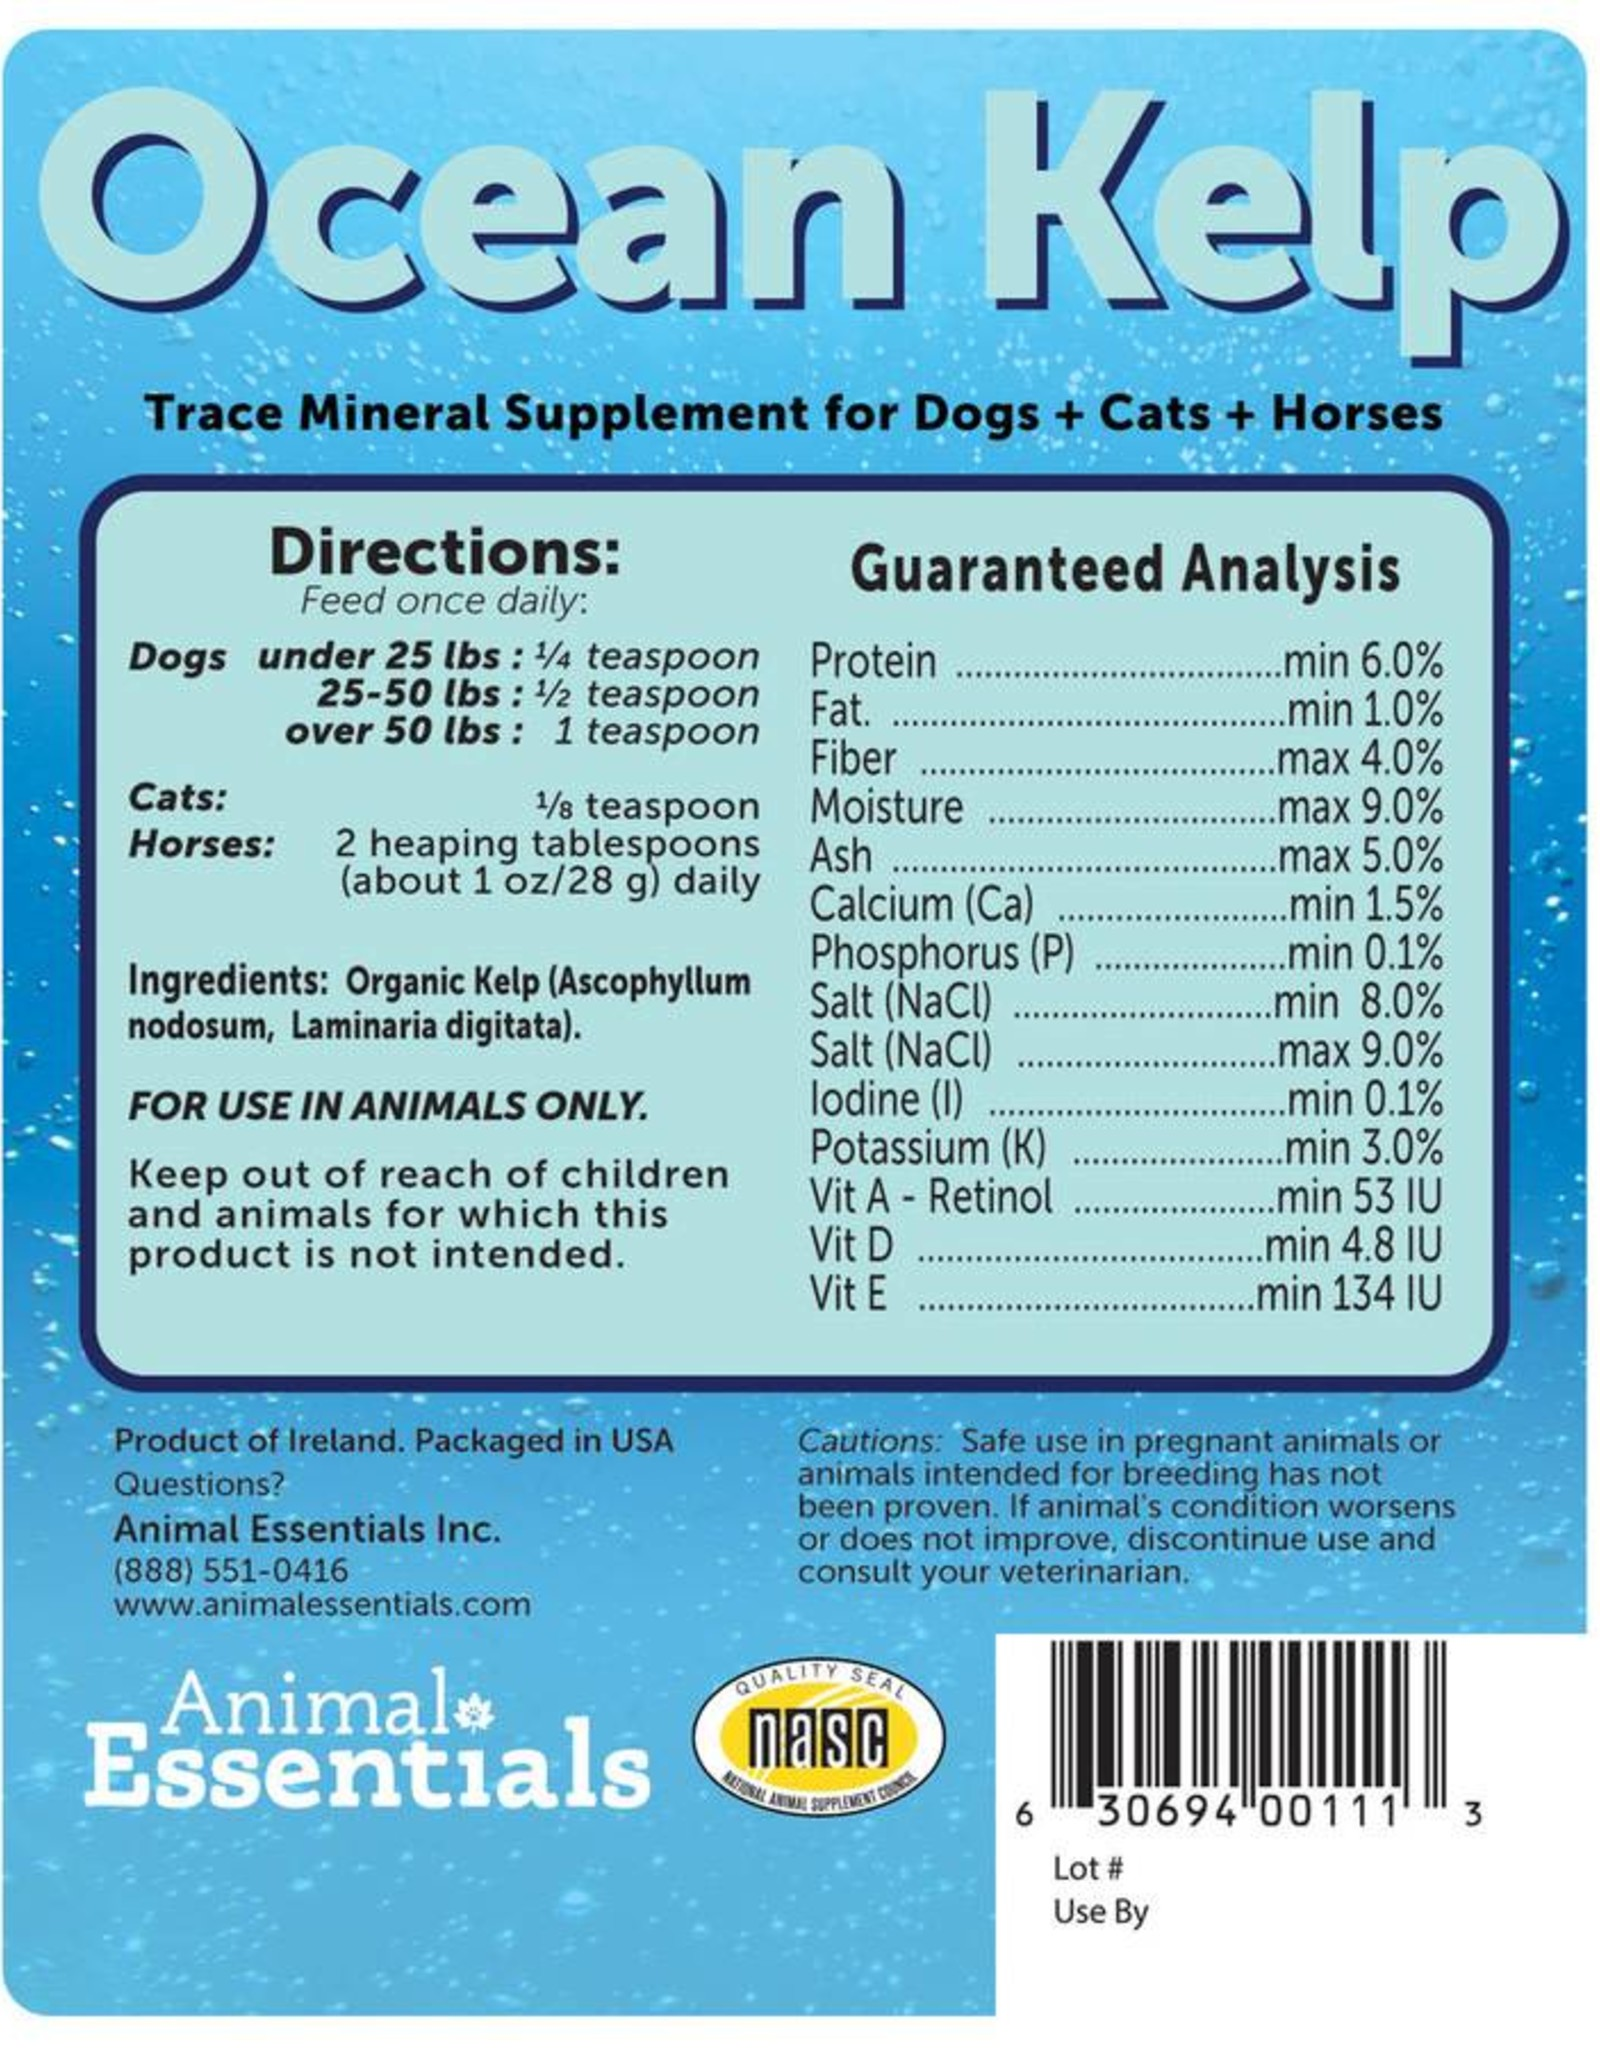 Animal Essentials Animal Essentials Ocean Kelp 8oz